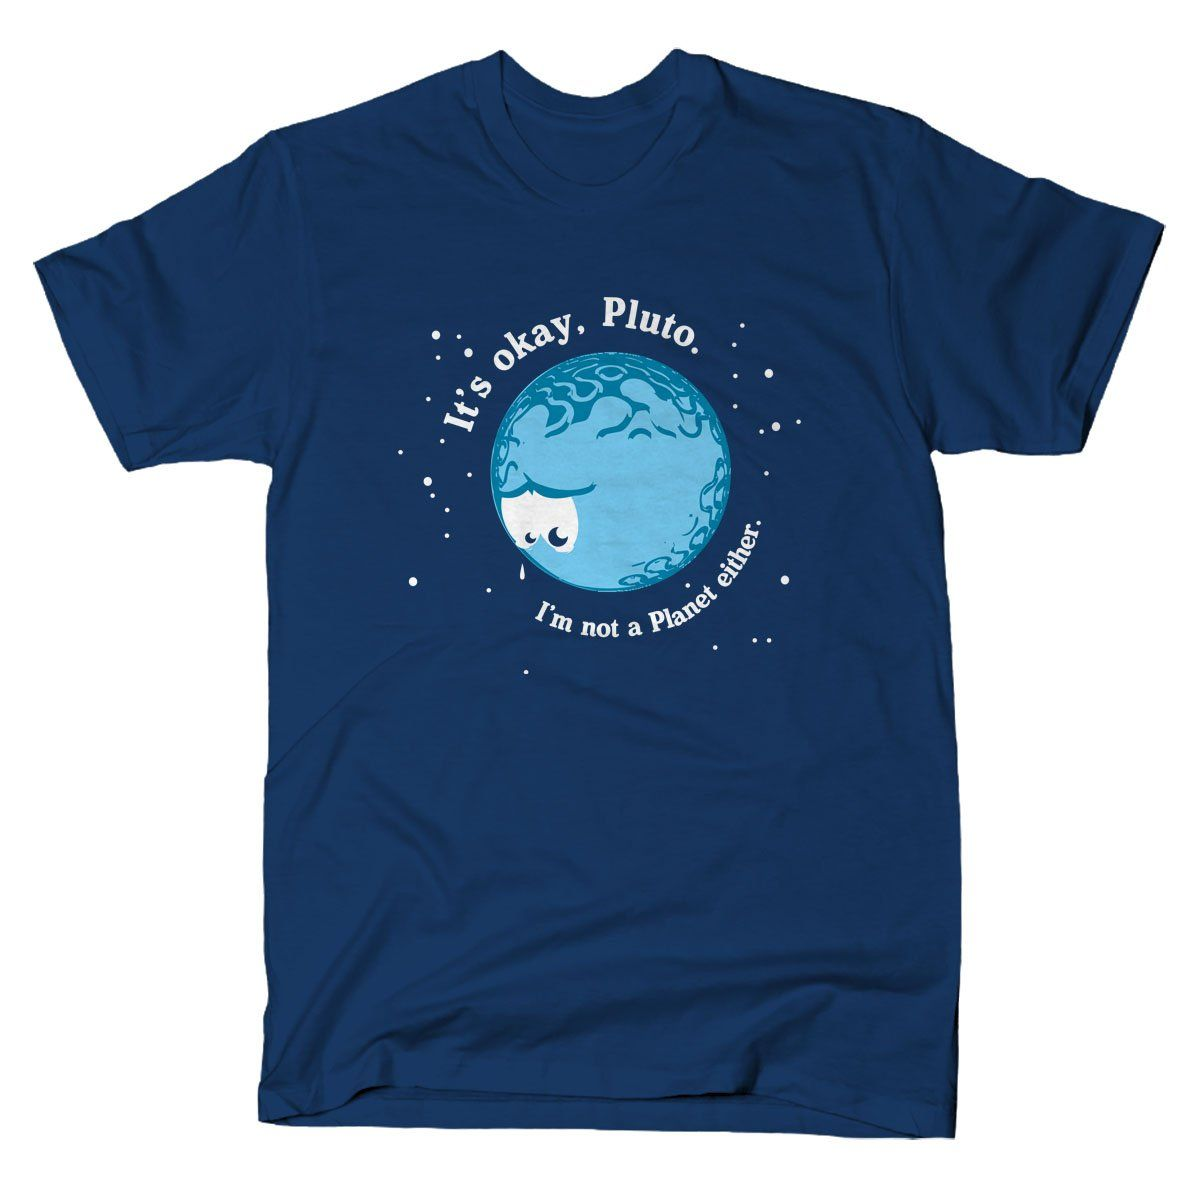 It's Okay Pluto, I'm Not A Planet Either T-Shirt | Mens ...